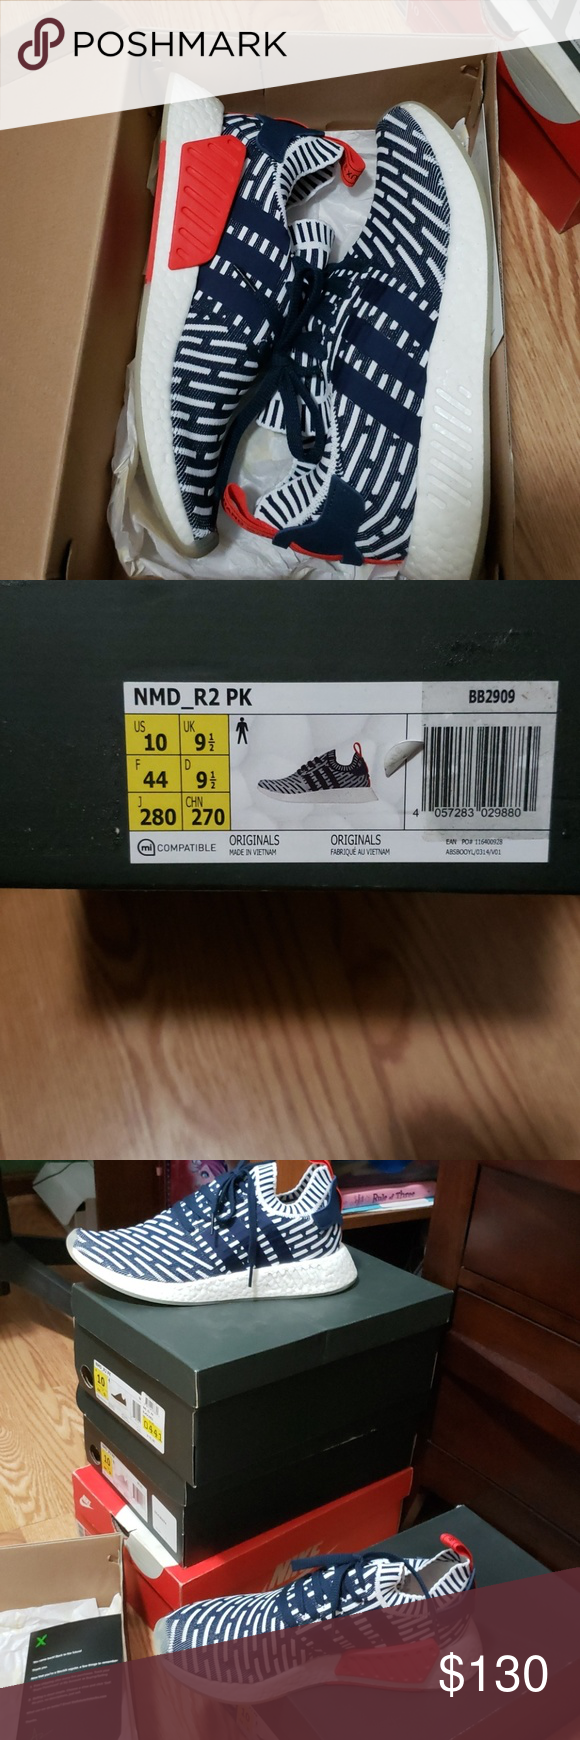 the latest 8cdf9 5f1cf Adidas NMD R2 Mint Condition: Worn once 100% Authentic Price ...